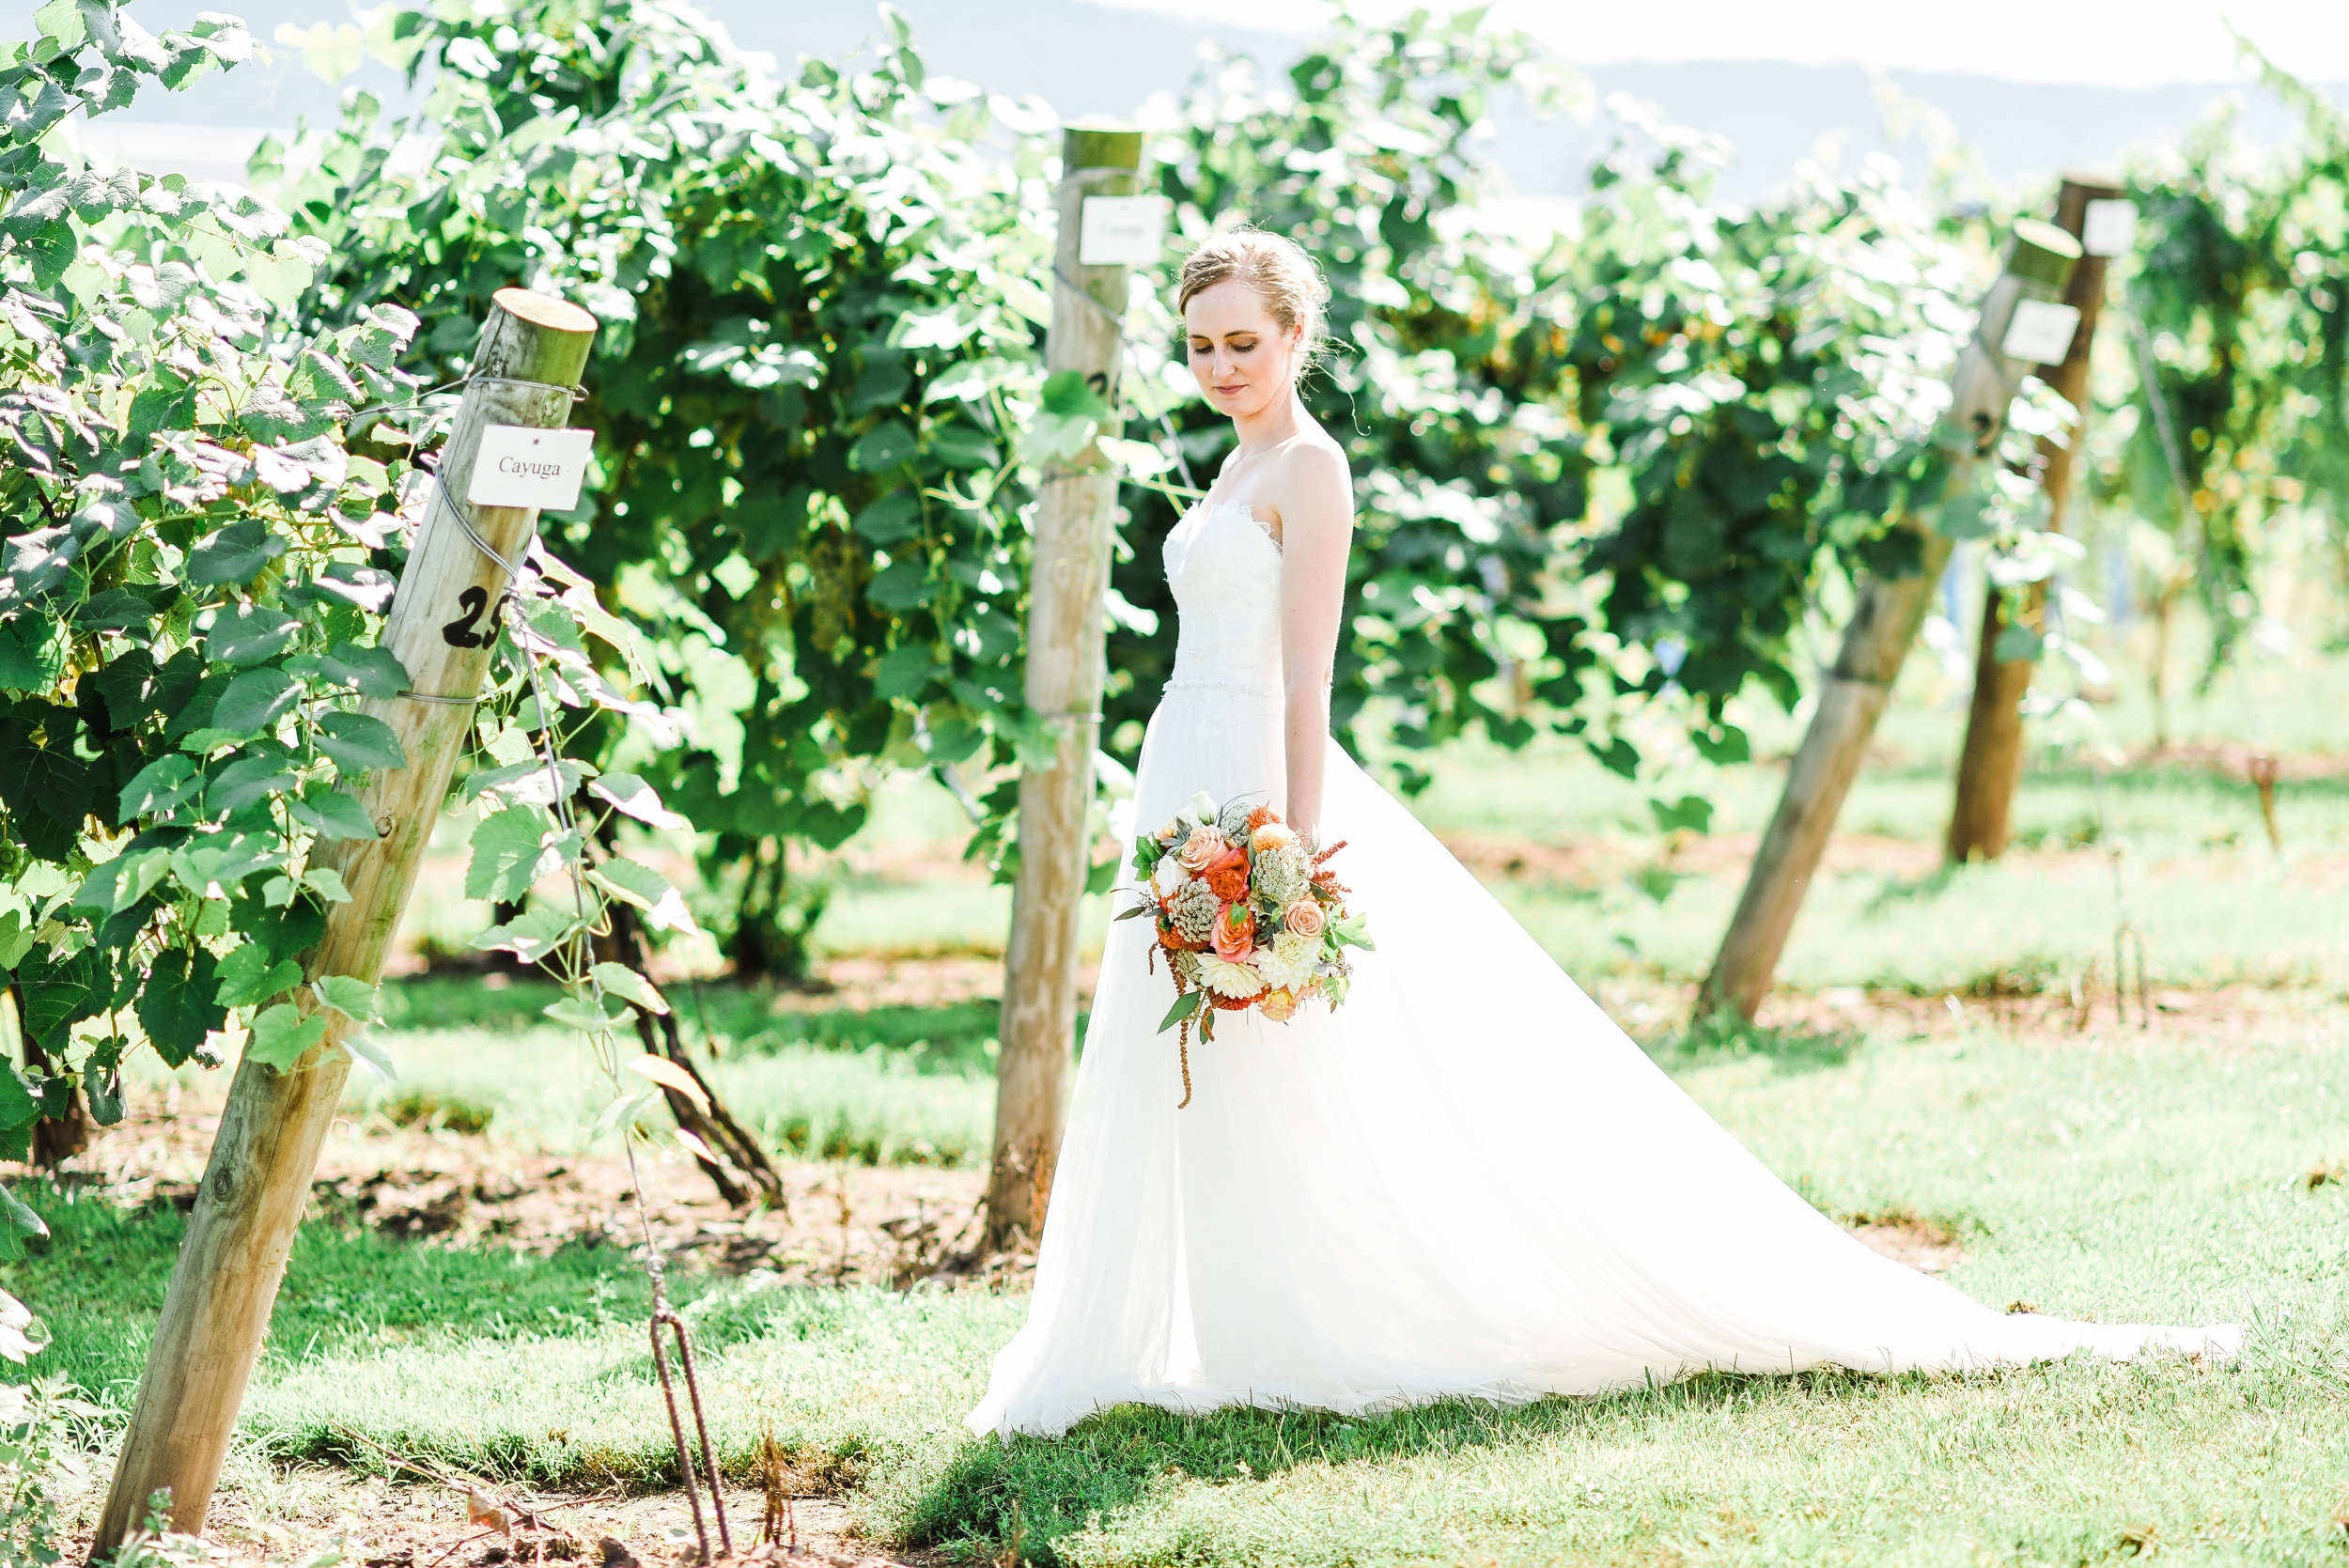 The Bride amongst the grapevines with her bouquet hanging gracefully at her side, the perfect capture!